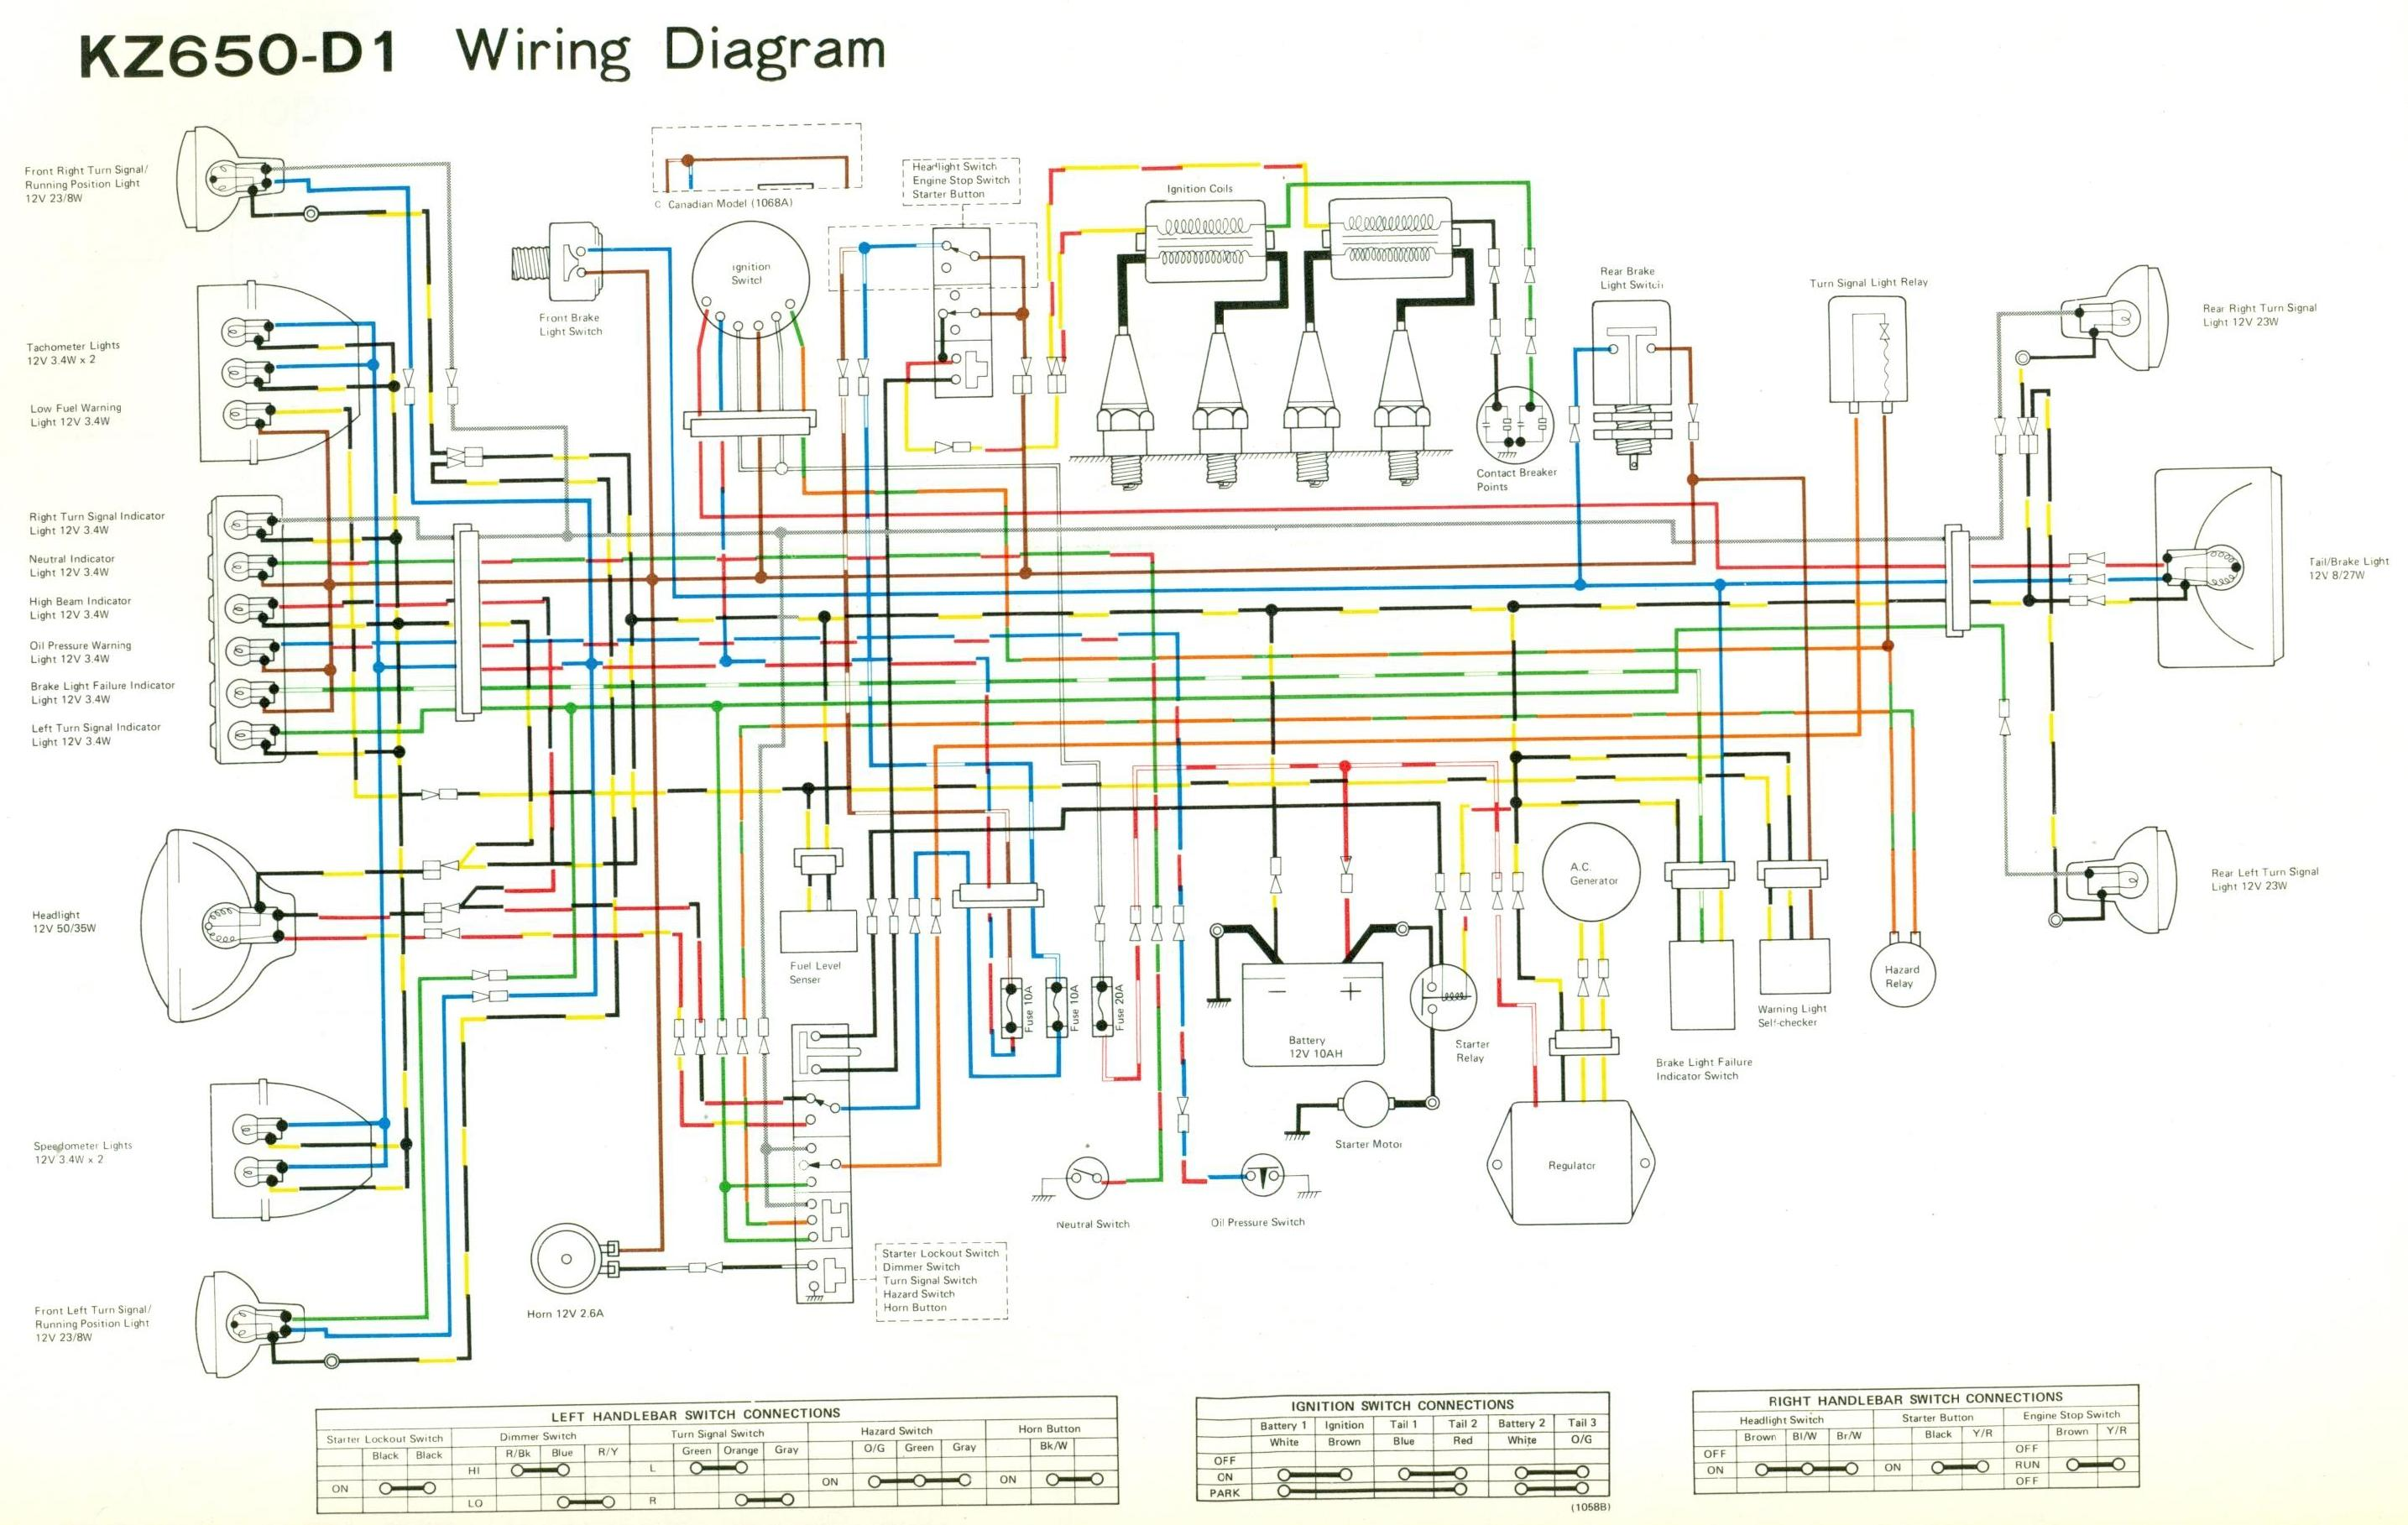 KZ650 D wiring diagrams 1980 kz650 wiring diagram at readyjetset.co